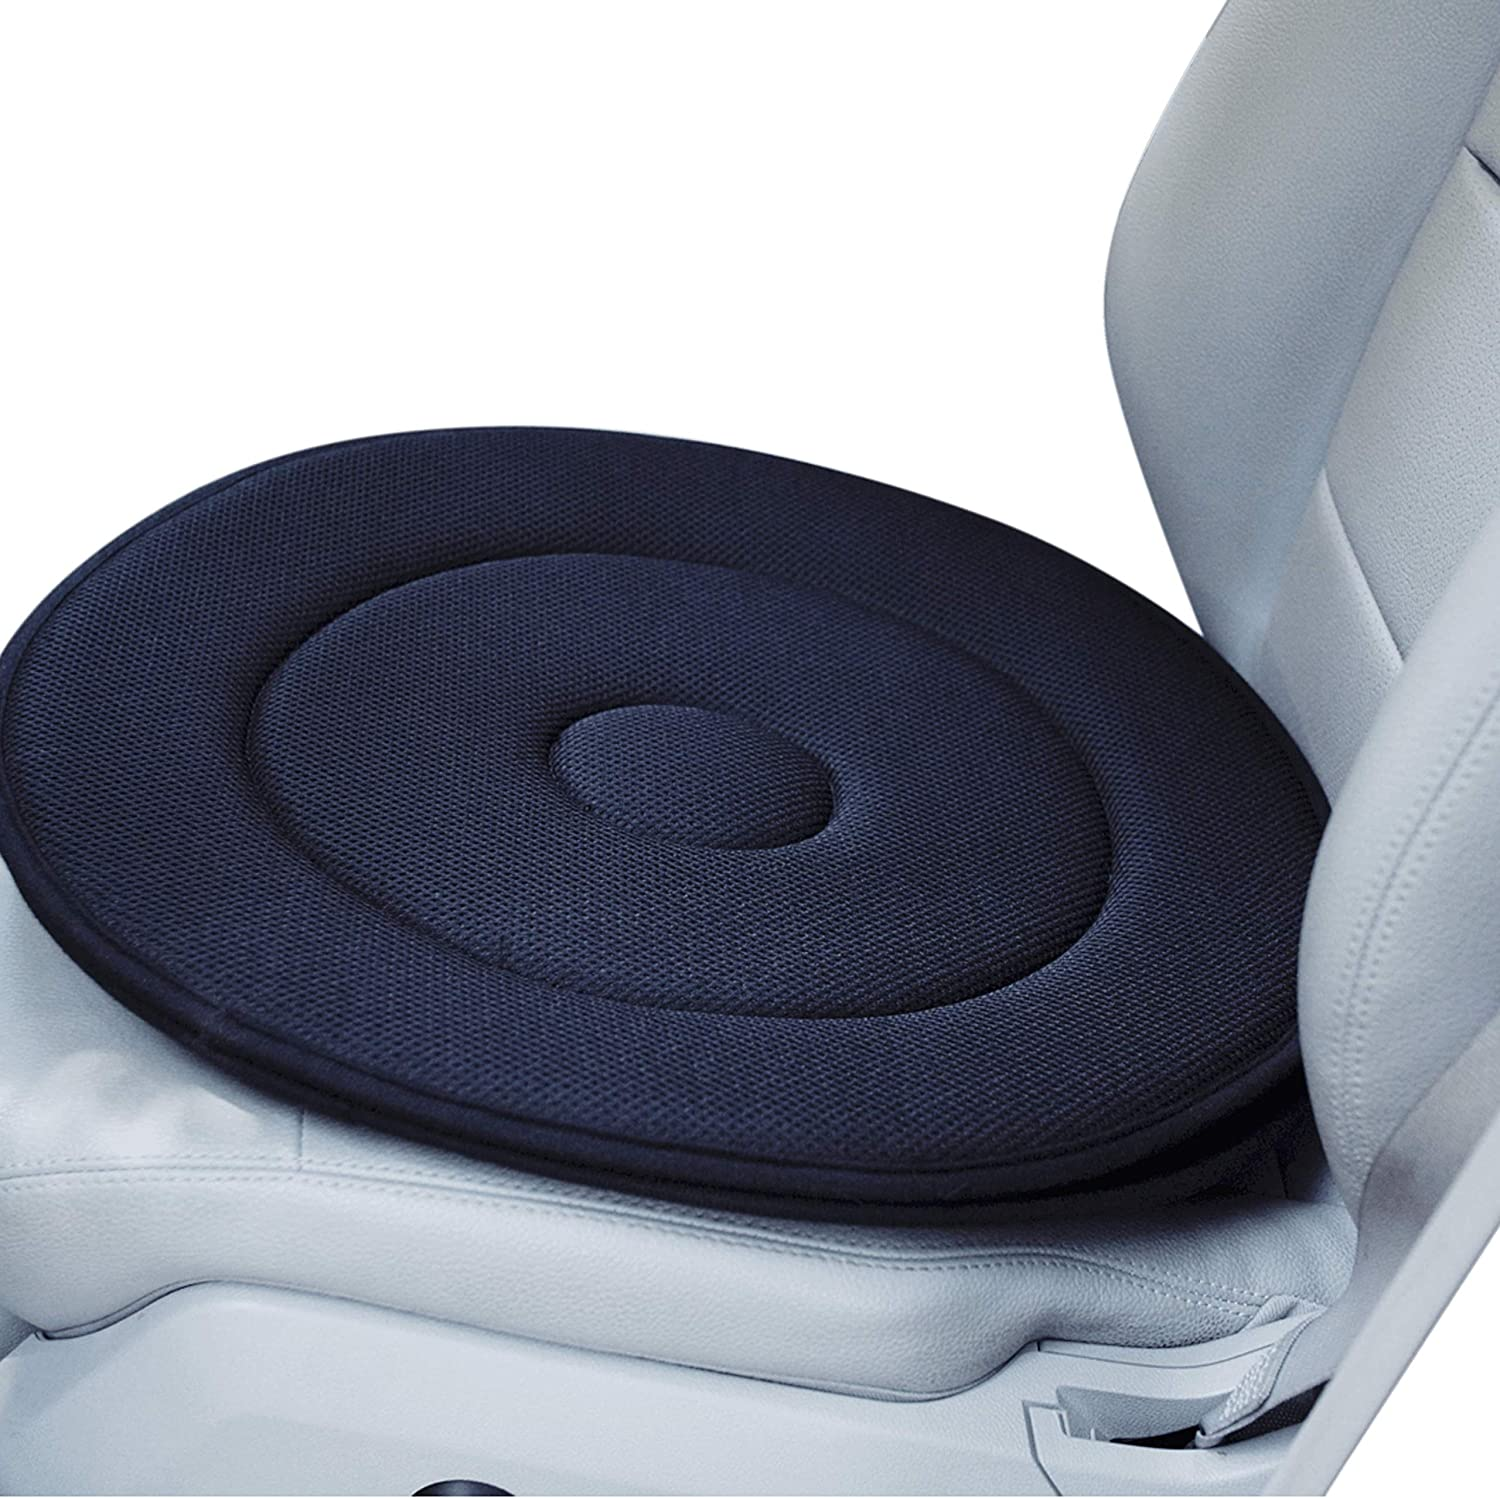 Senior Swivel Memory Foam Orthopedic Seat Cushion Rotating Pain Relieving Seat Pad for Cars Office Chairs or Home (Black)